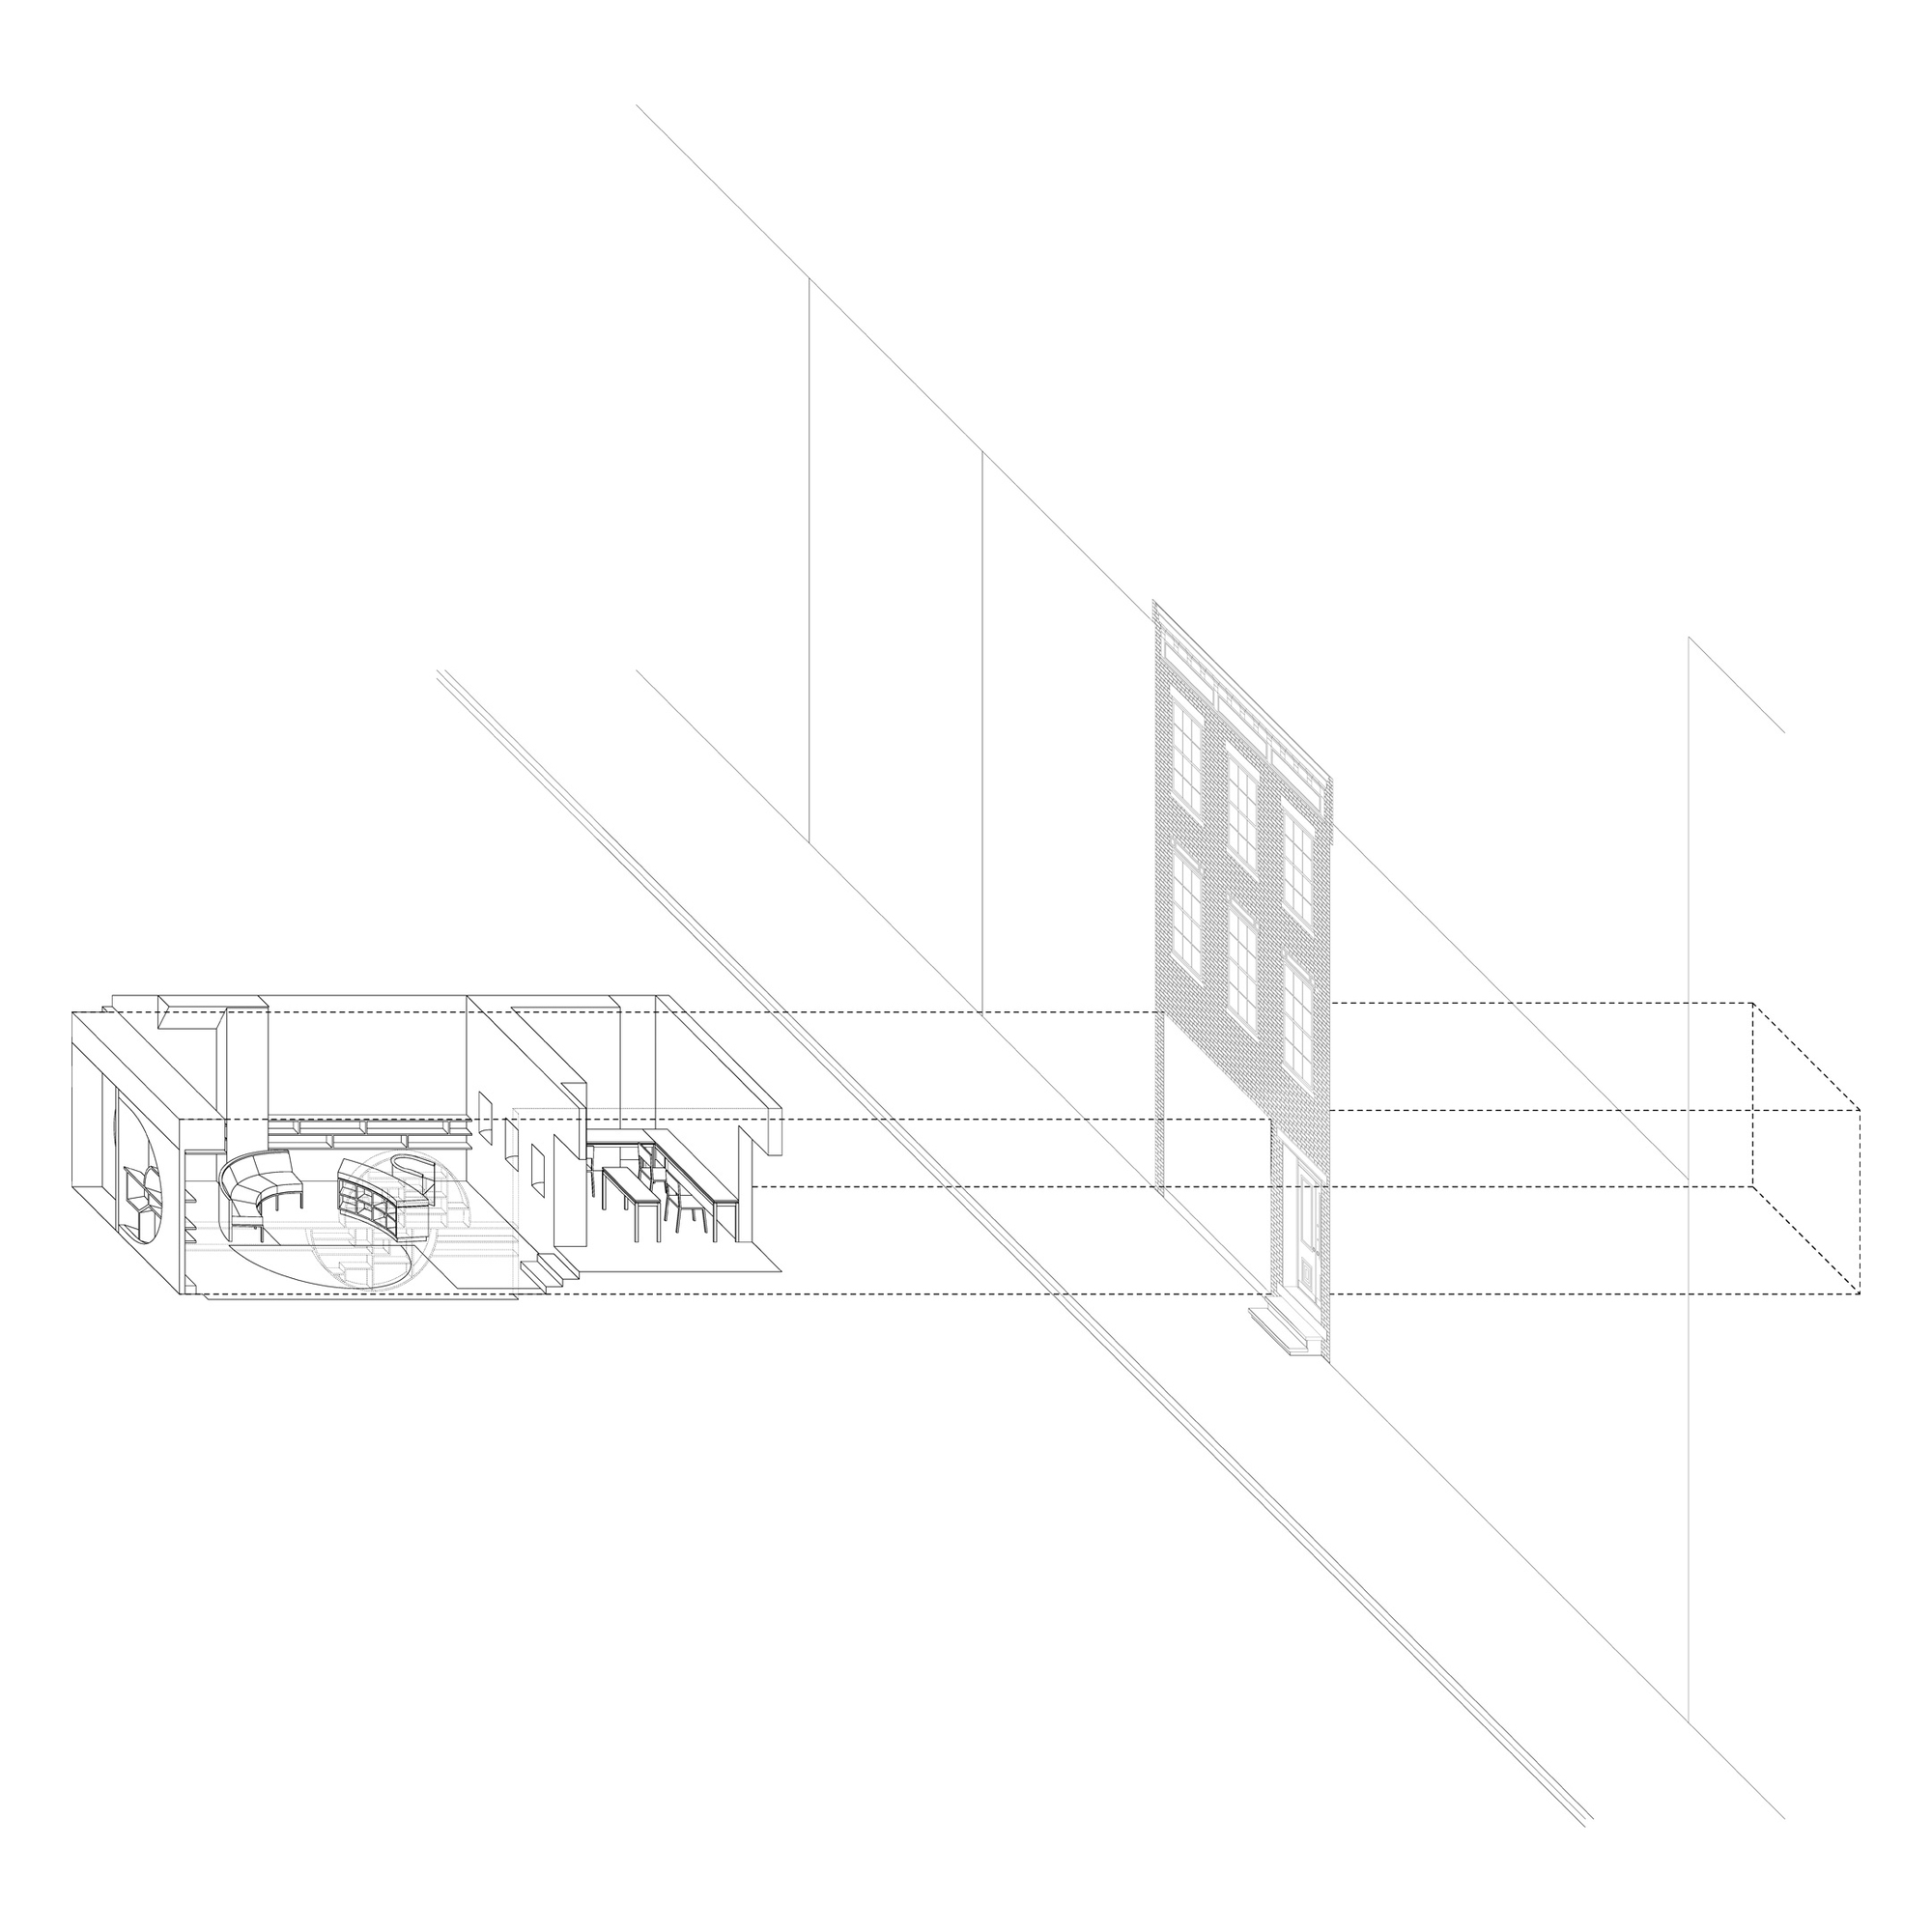 Frederic_Malle-Steven_Holl_Architects-18.png